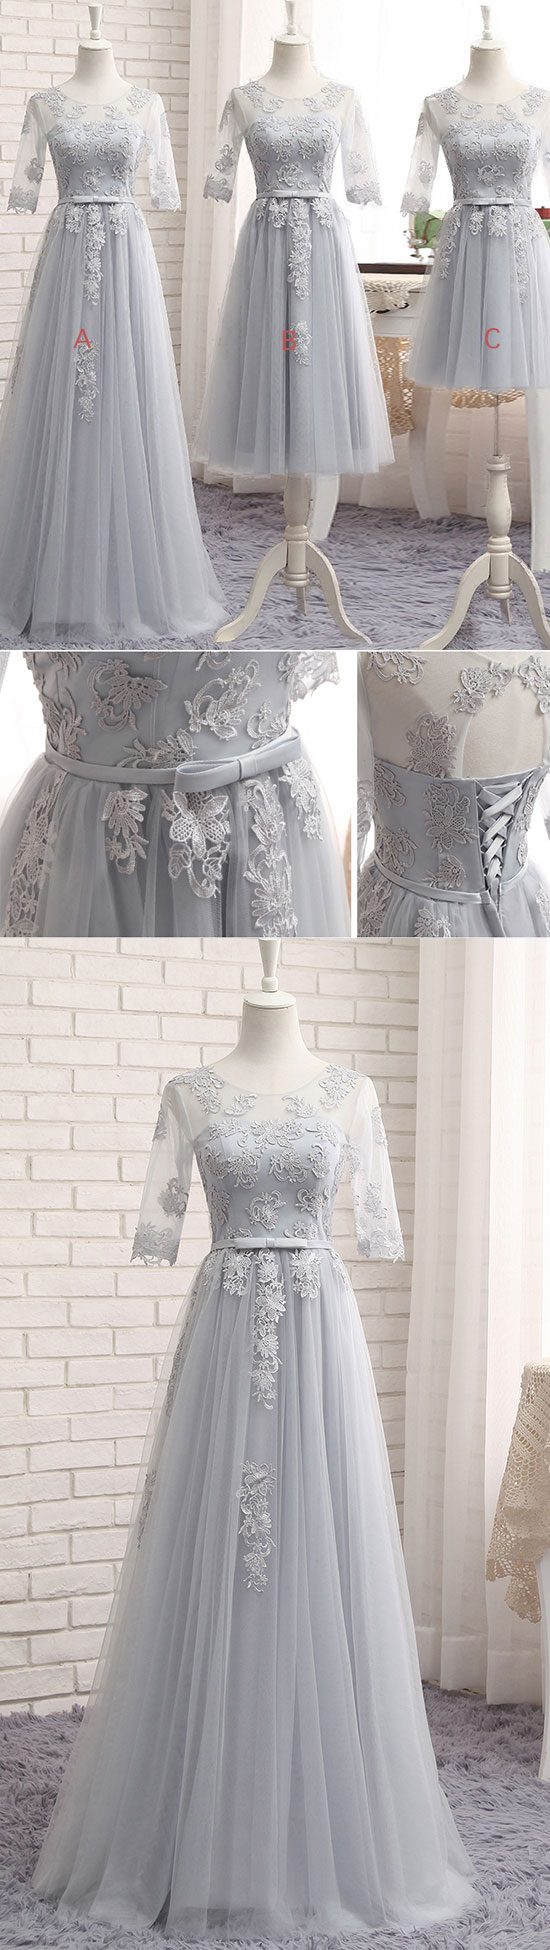 Gray tulle lace long prom dress gray bridesmaid dress grey